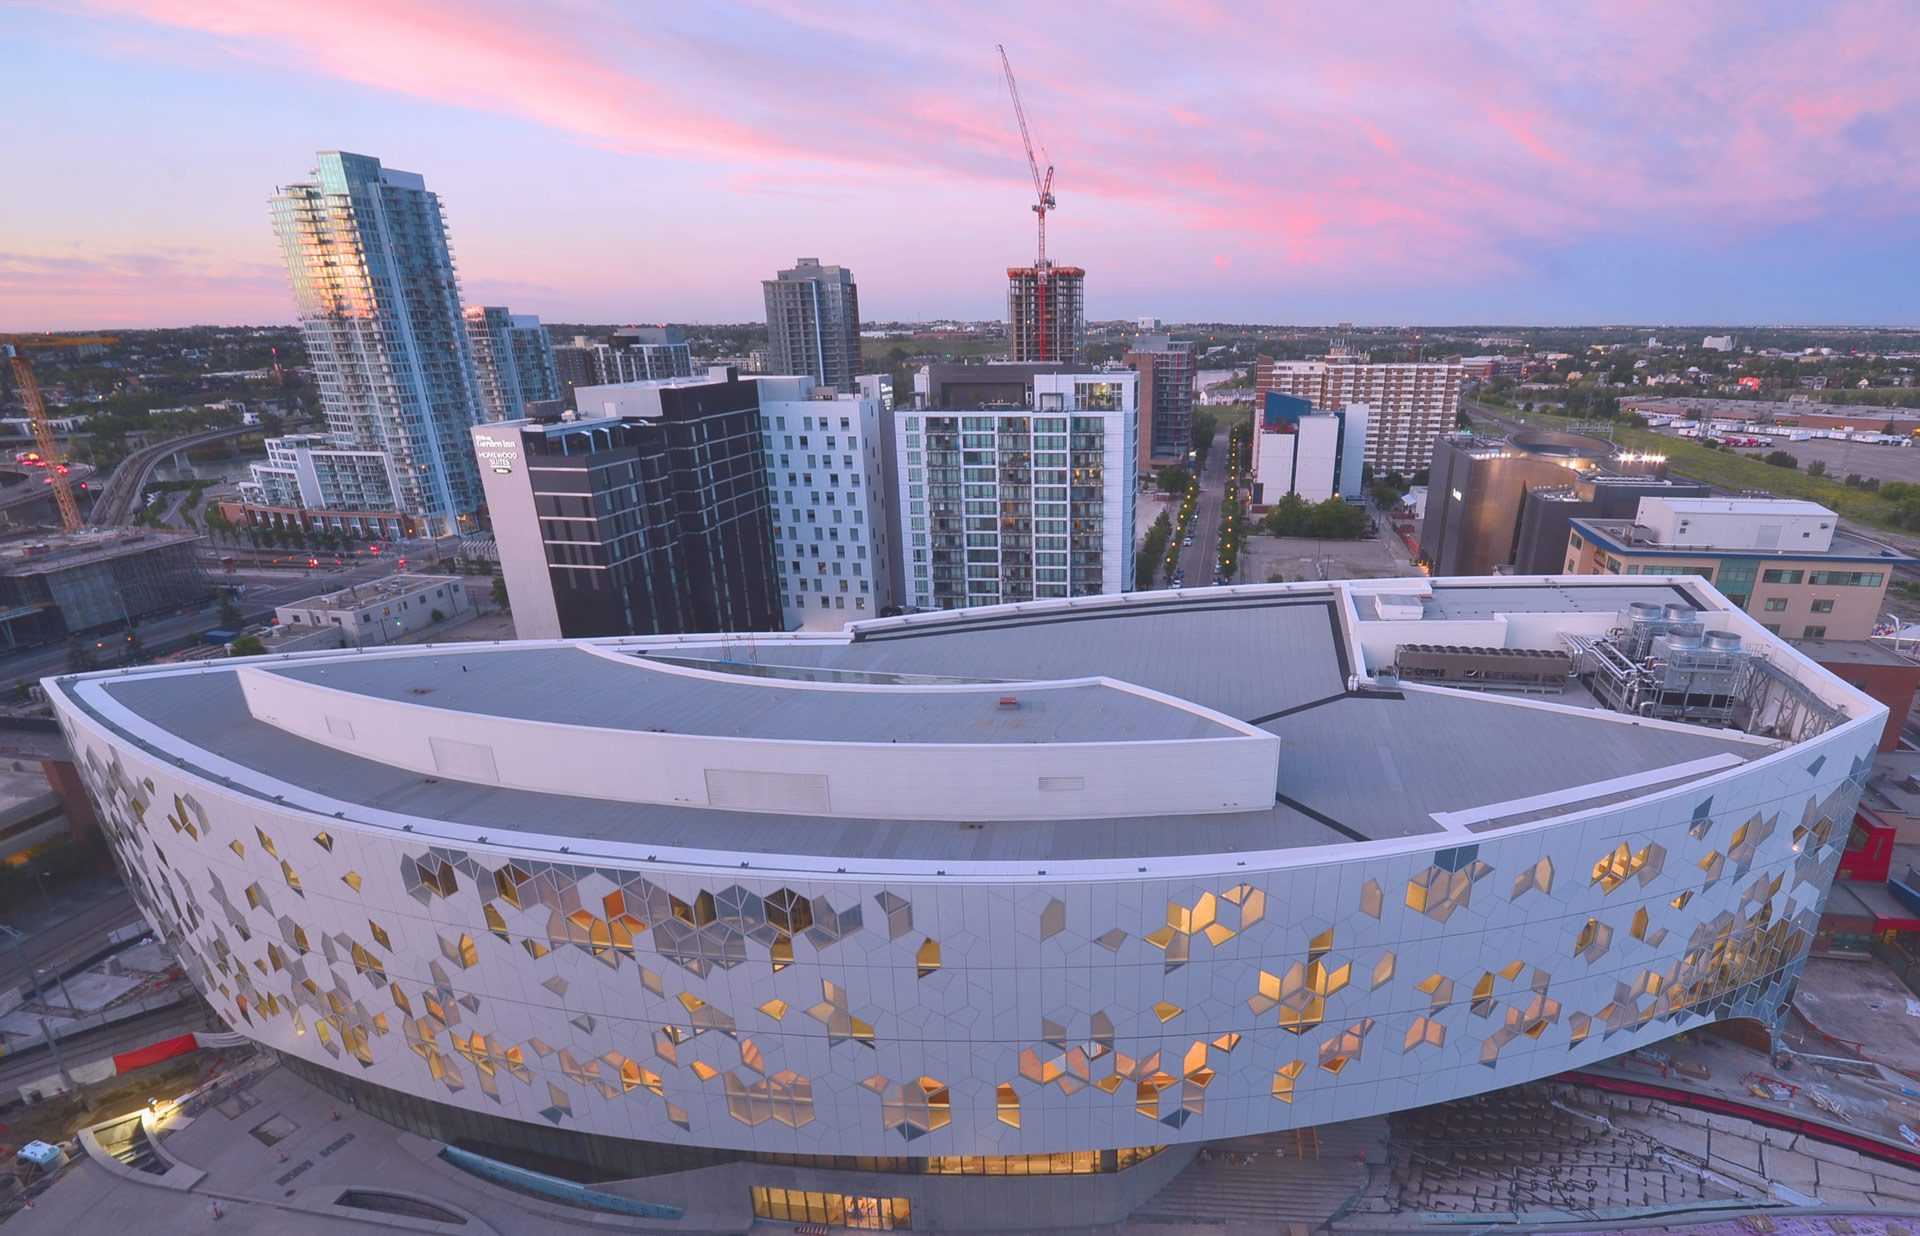 Calgary New Central Library Construction OwlBox 4K Construction Camera Time-Lapse System & Services